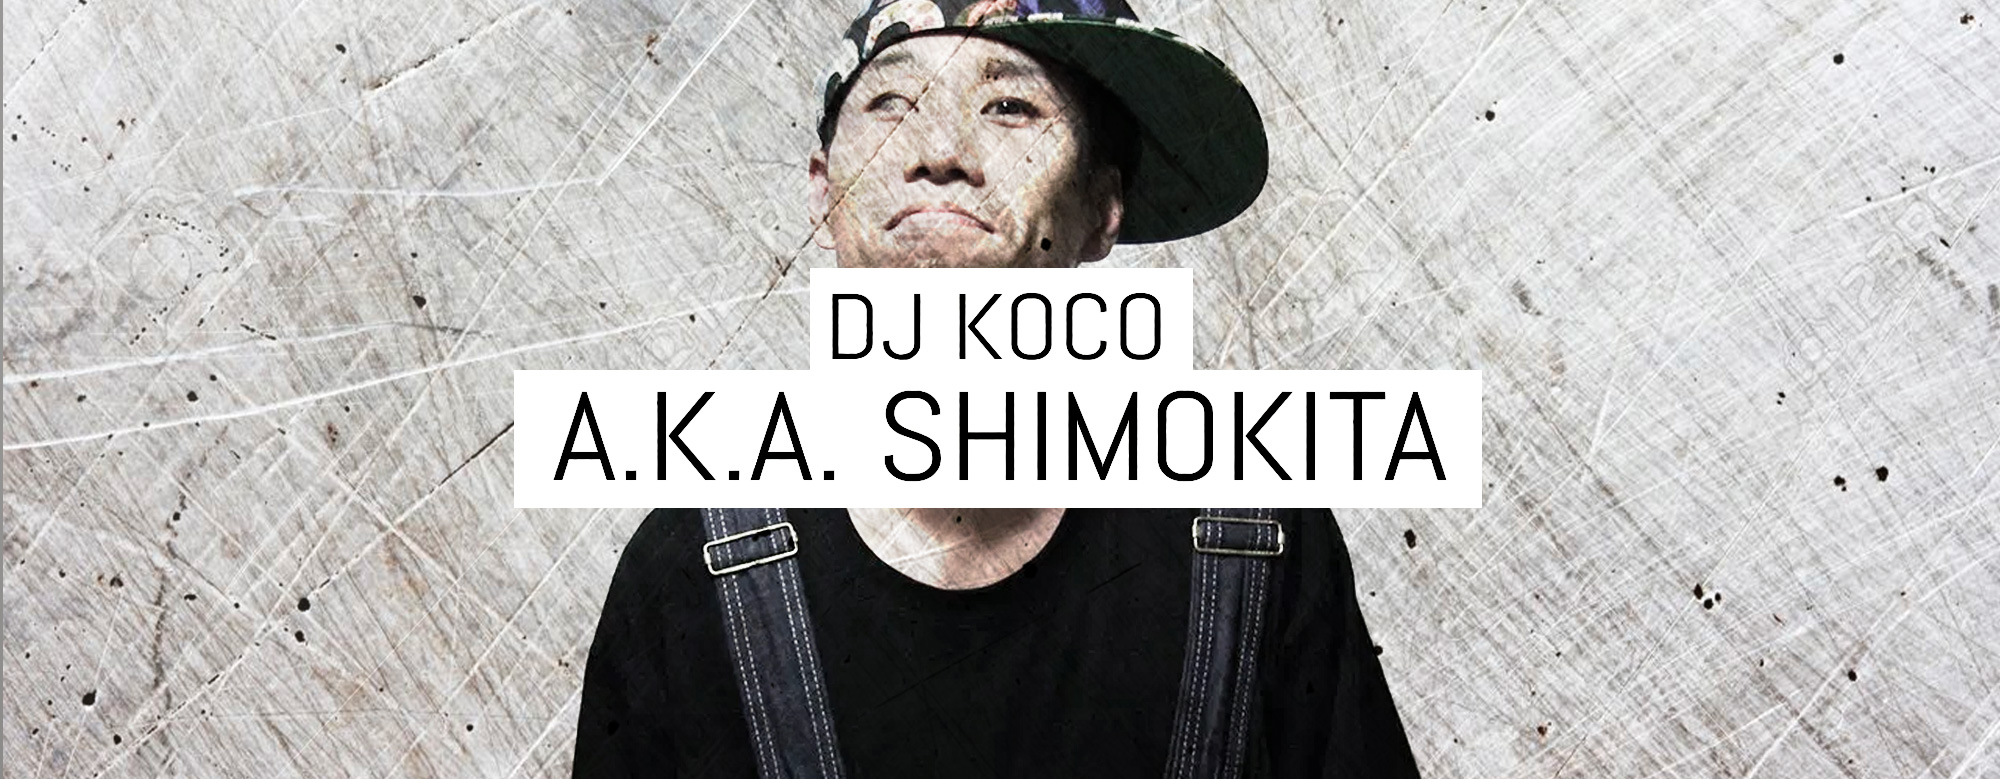 The Incredible DJ Koco A.K.A. Shimokita